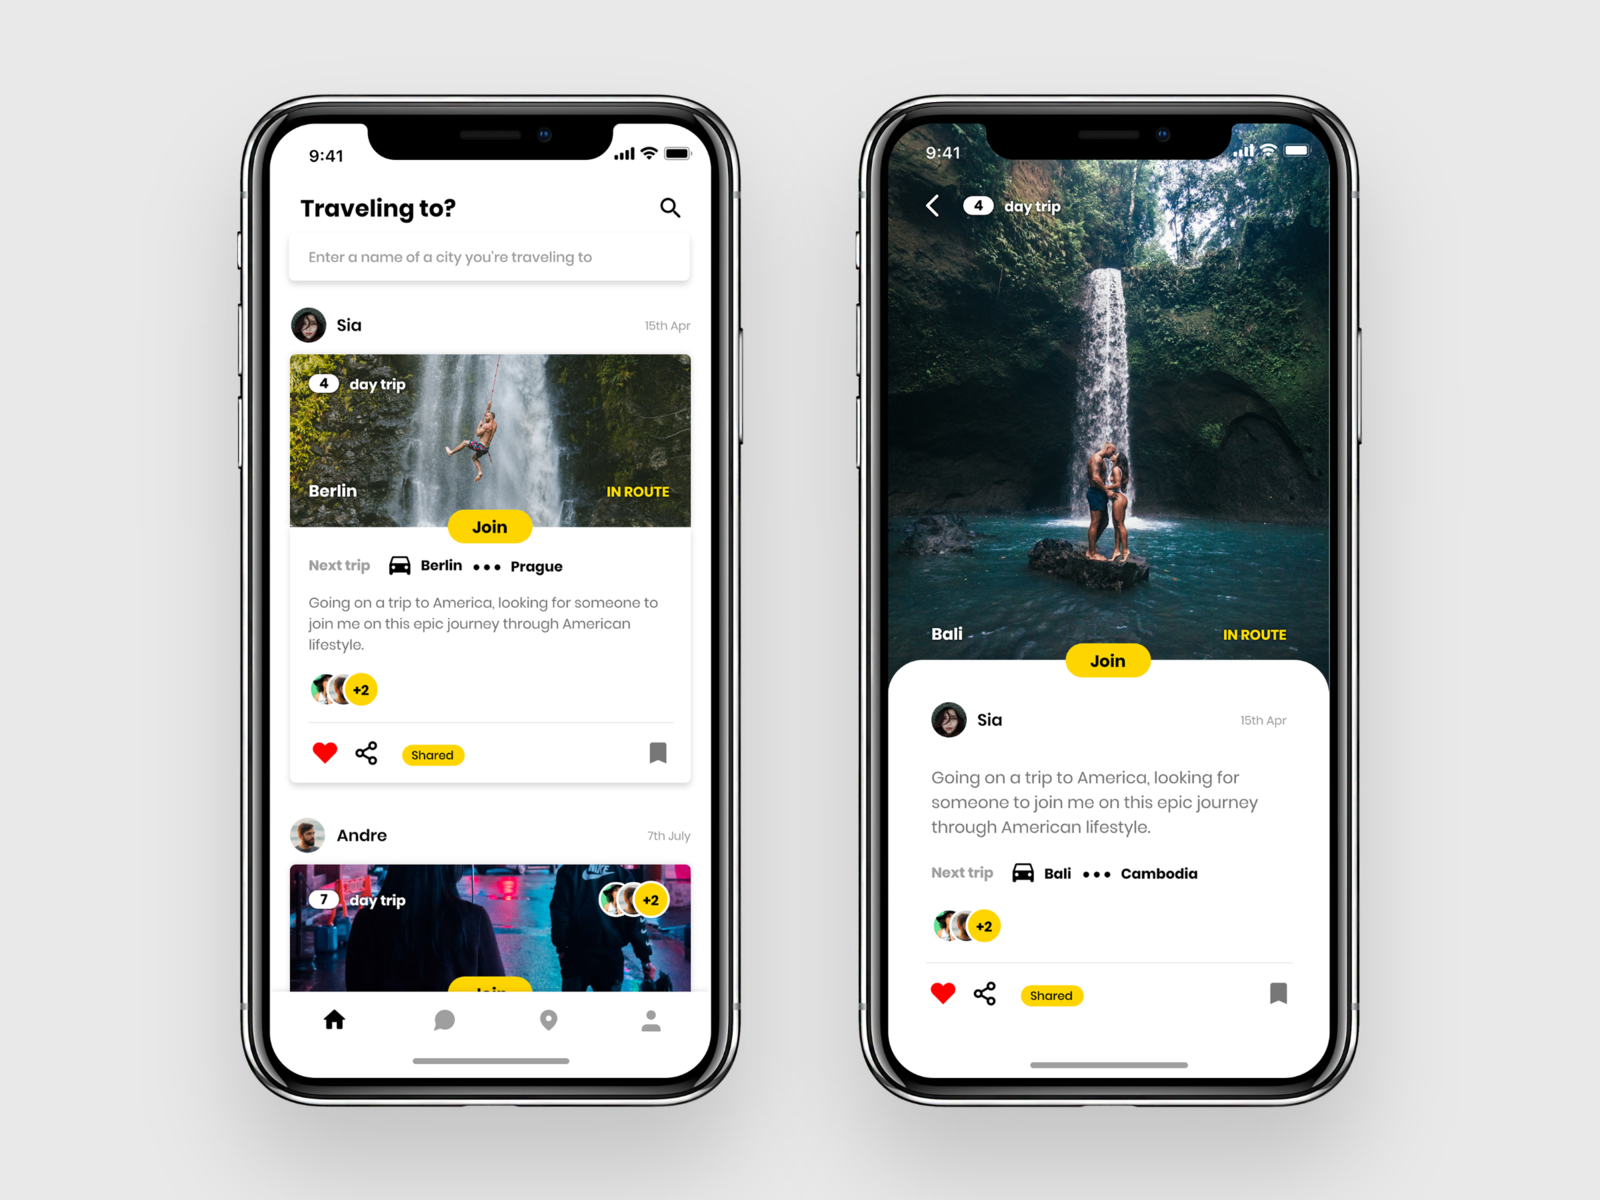 Backpack - UI Kit Free for Adobe XD ui kit travel app social app ios free ui kit freebie xd freebie ux uiux ui uidesign adobe xd